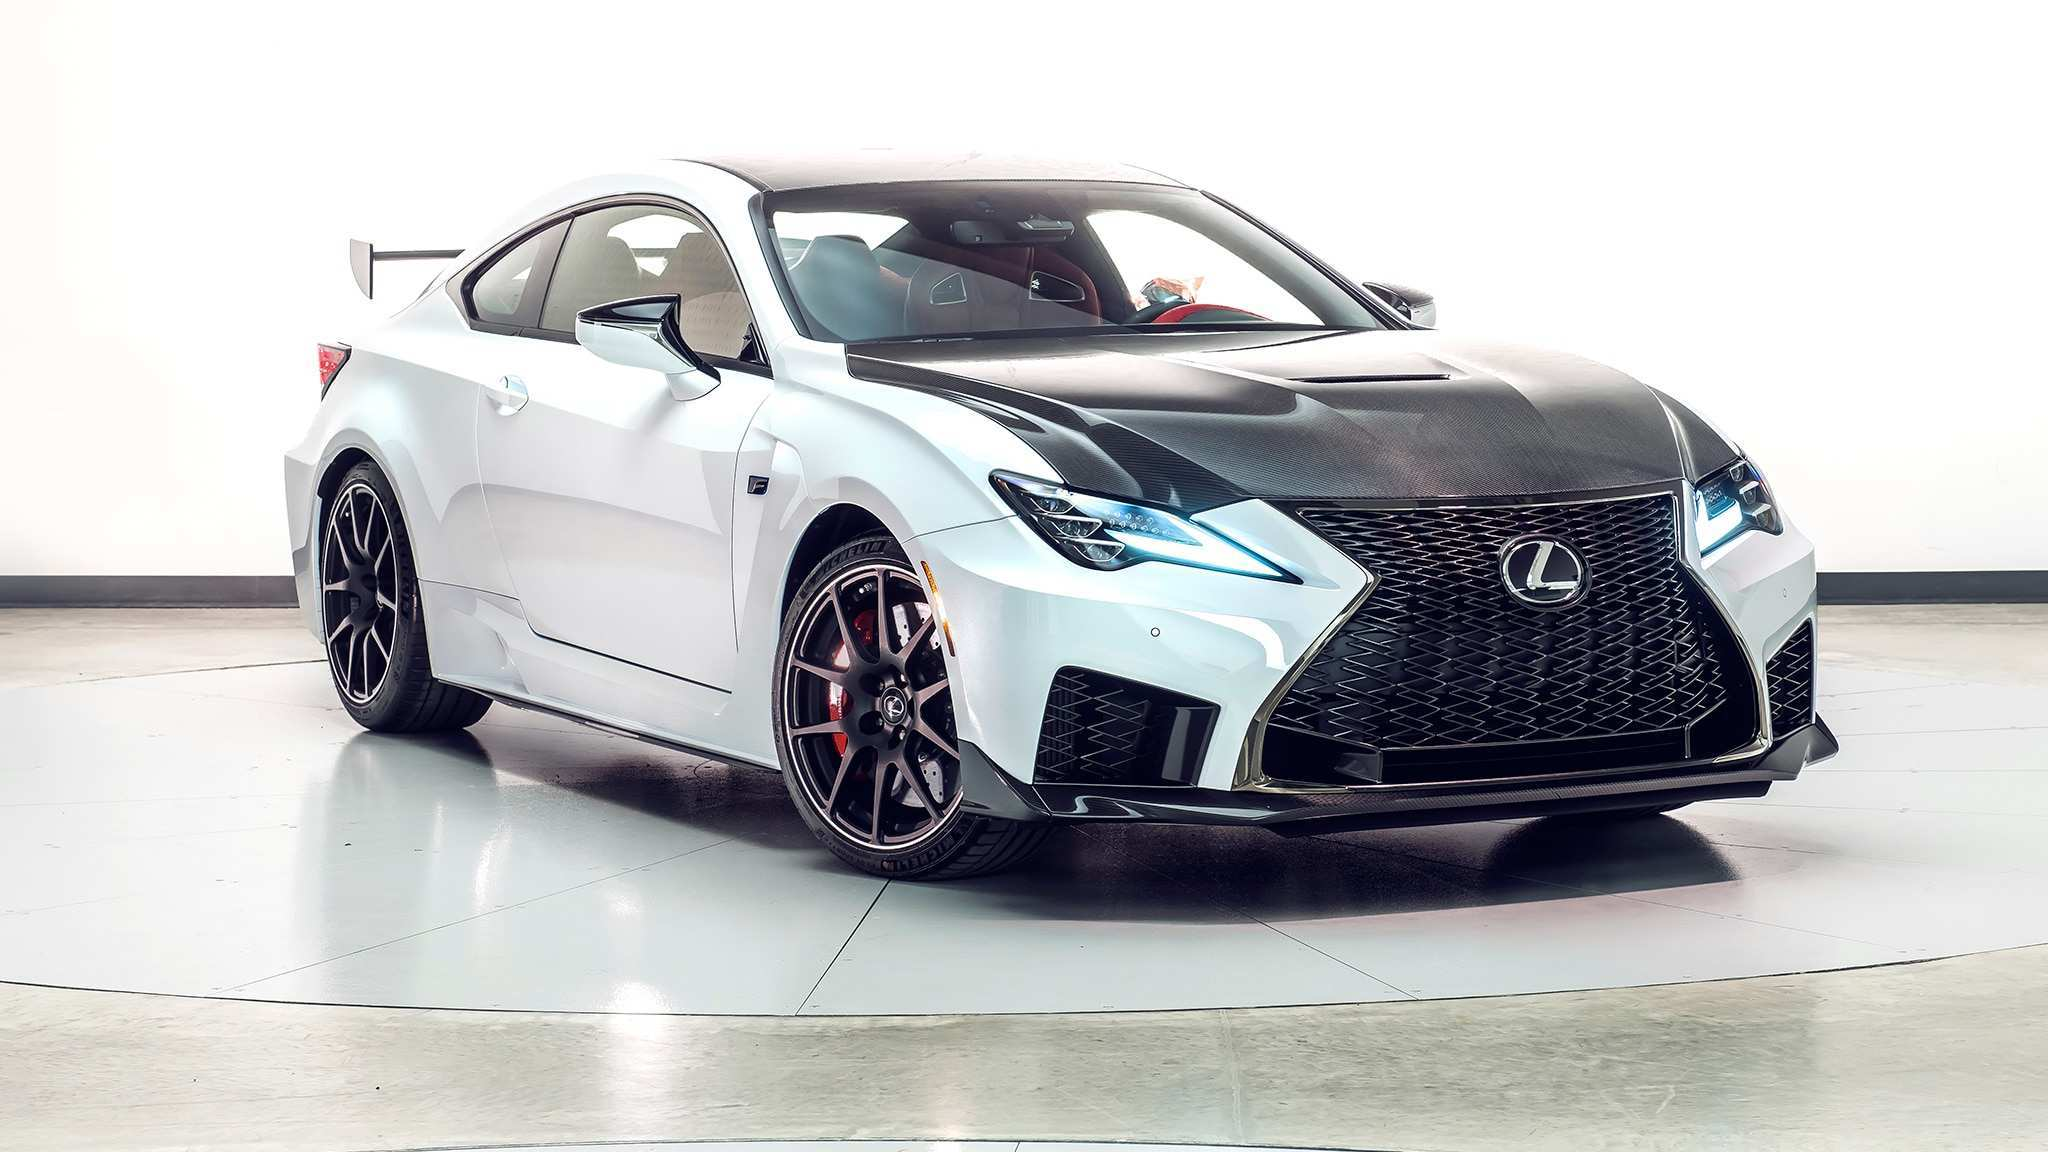 83 New Best Rx300 Lexus 2019 Release Date Model